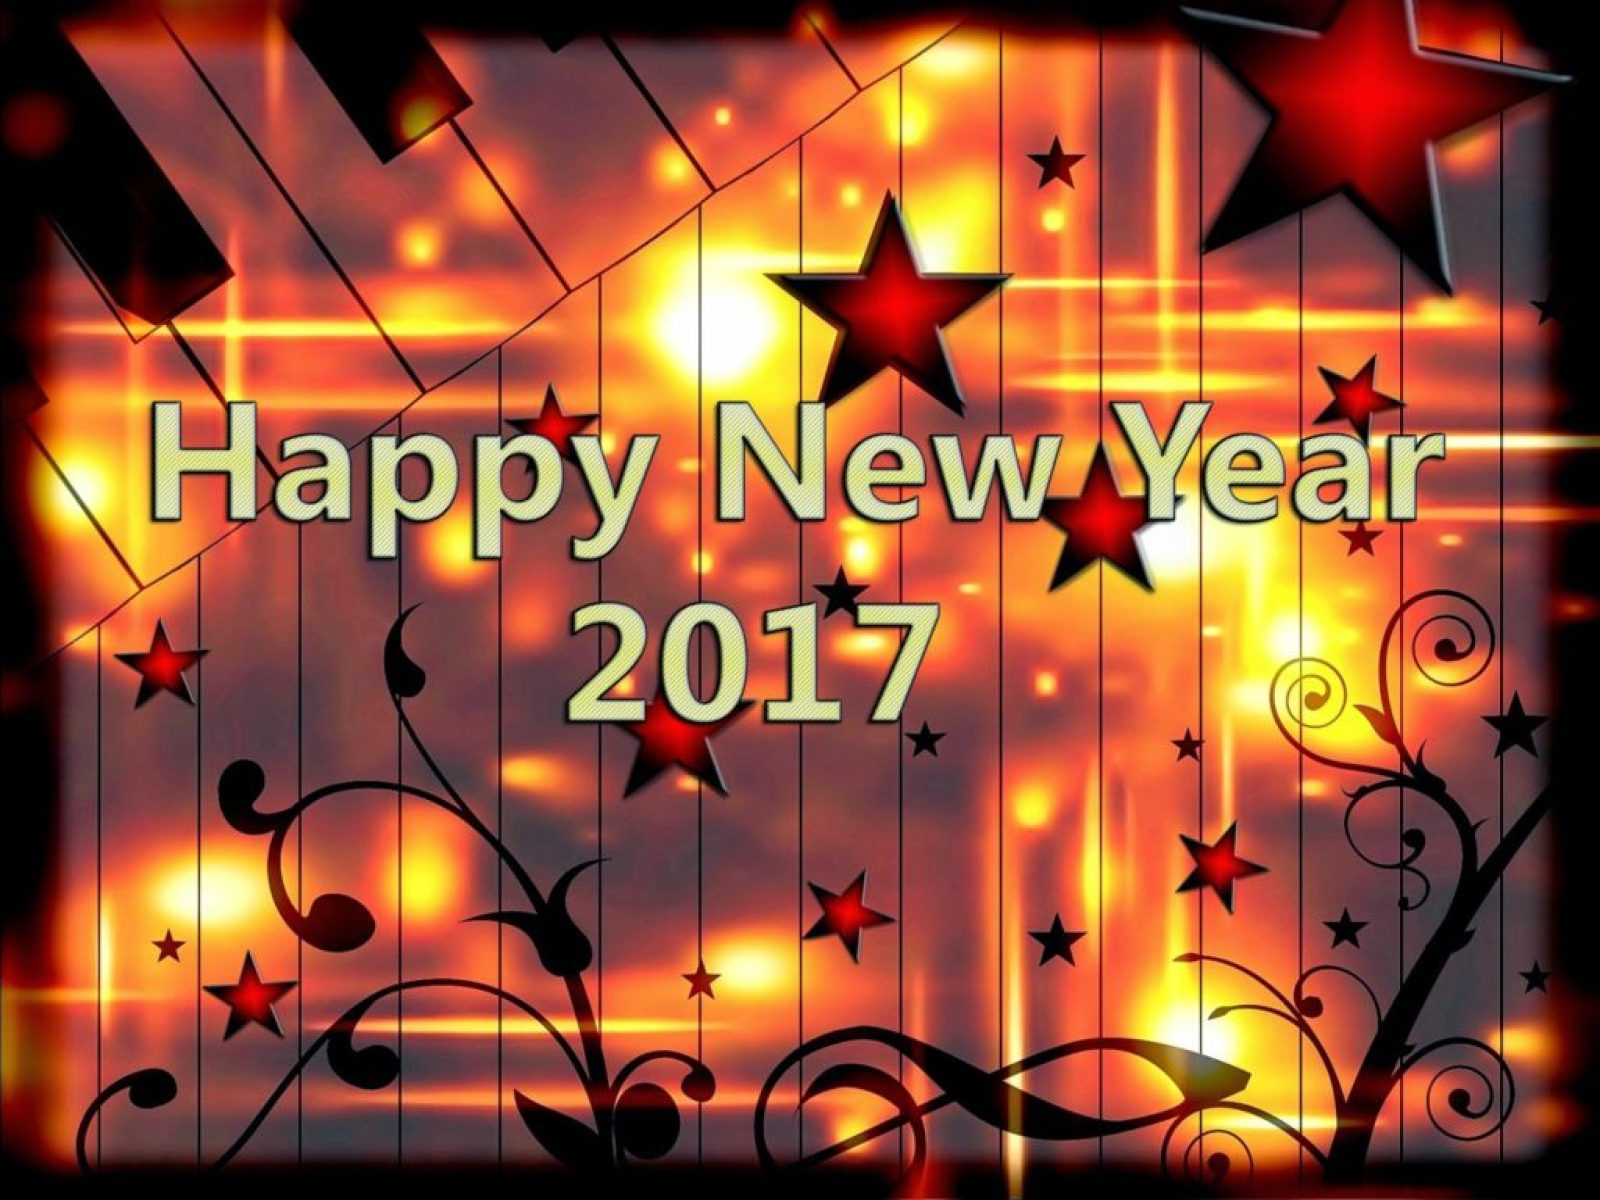 Happy New Year 2017 with shining stars